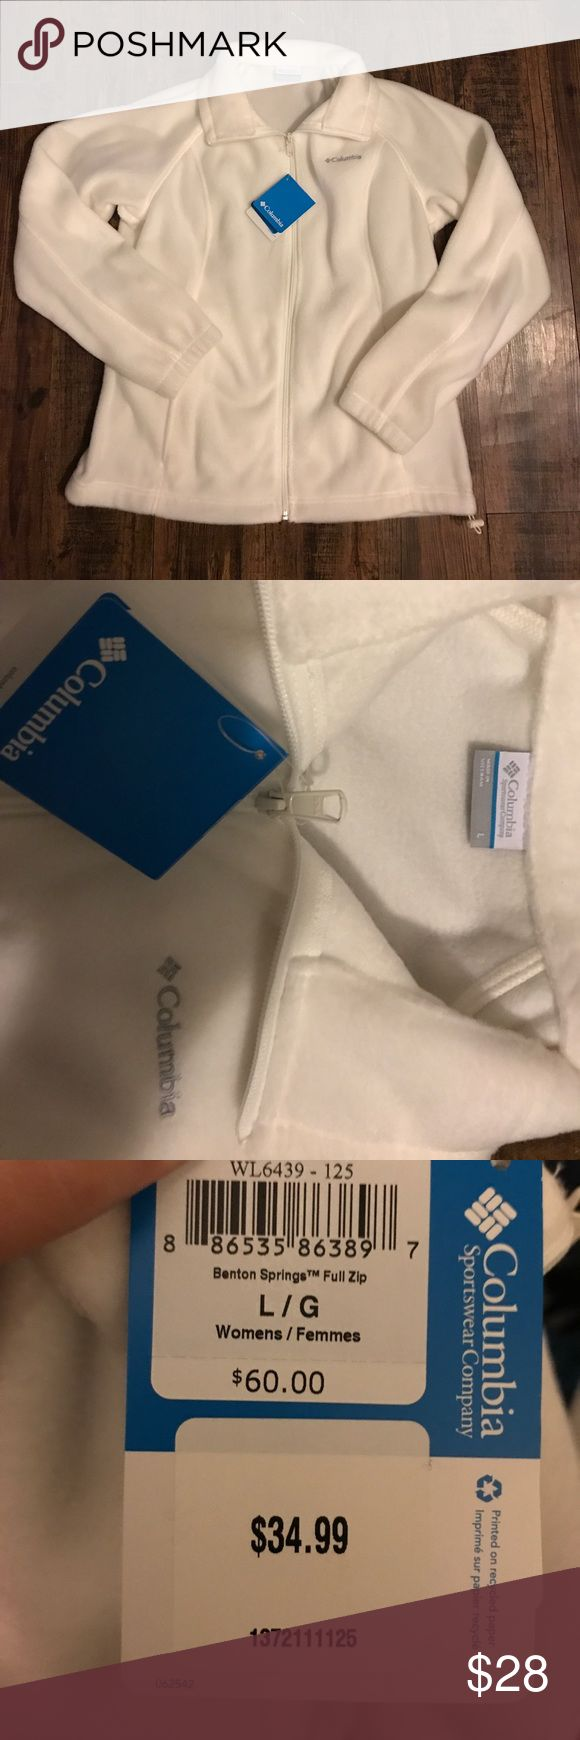 Women's White Fleece Columbia Jacket LG NWT Brand new with ...